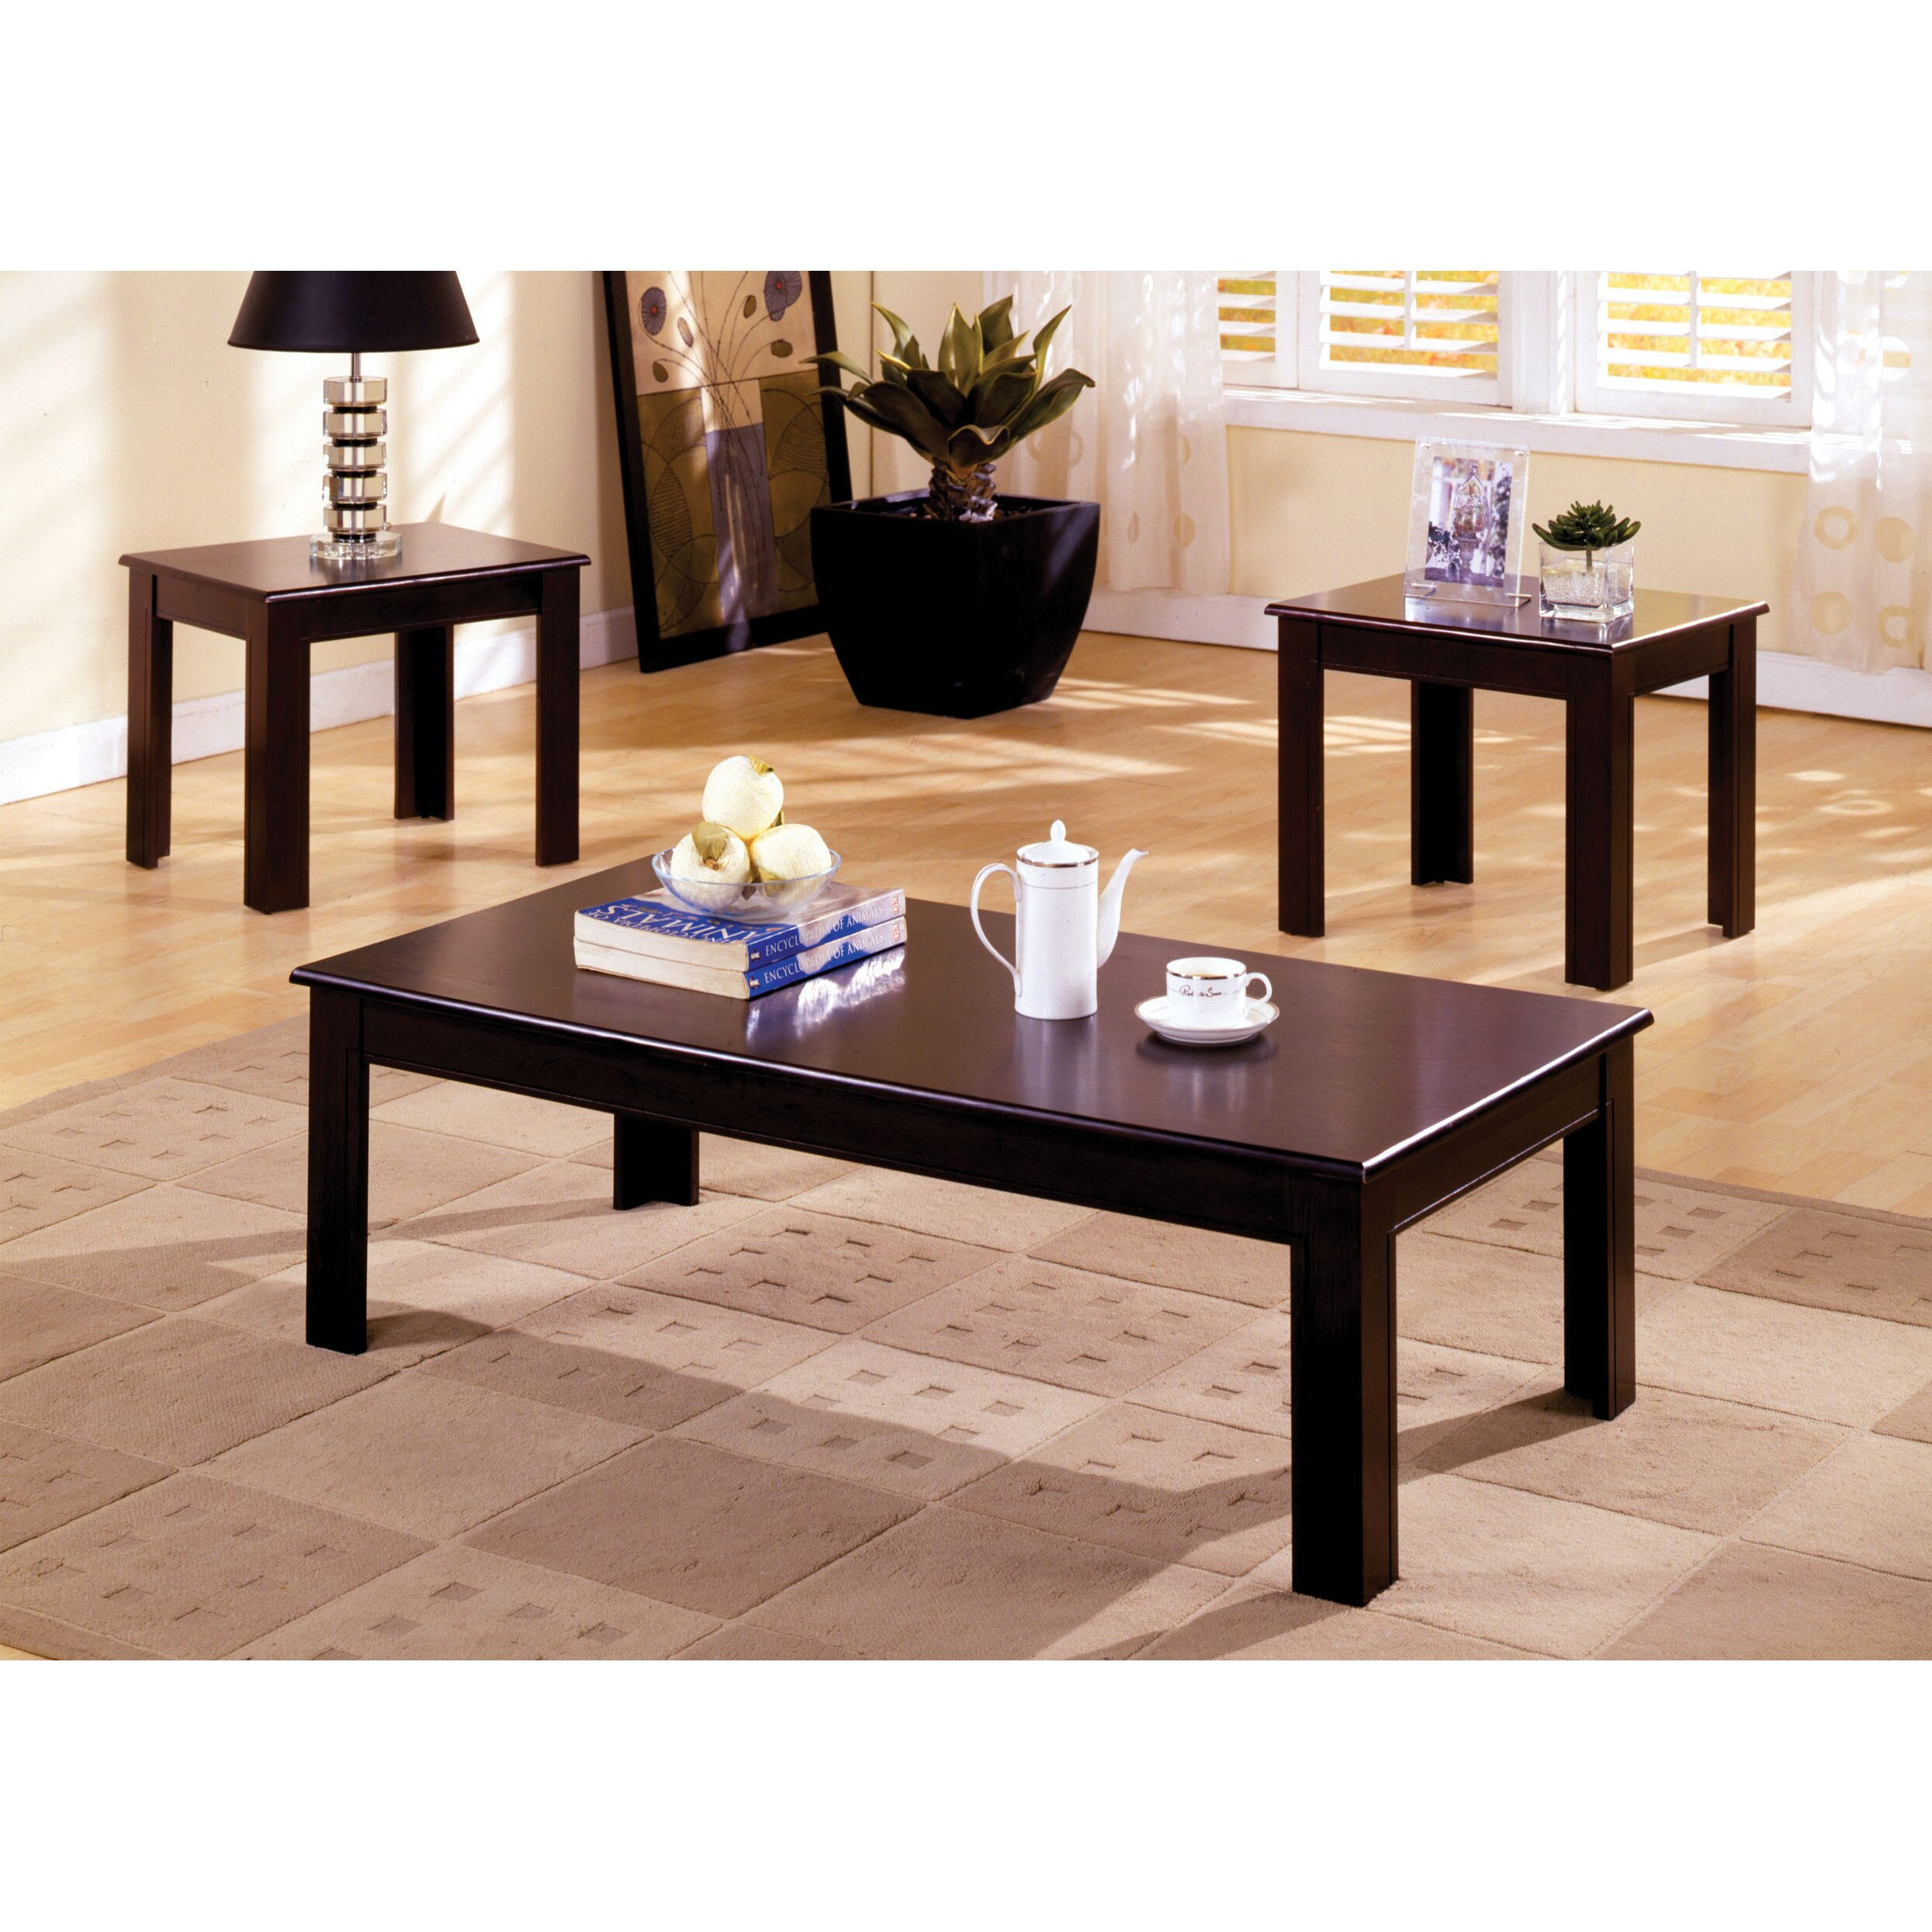 hokku designs frixe 3 piece coffee table set reviews wayfair. Black Bedroom Furniture Sets. Home Design Ideas